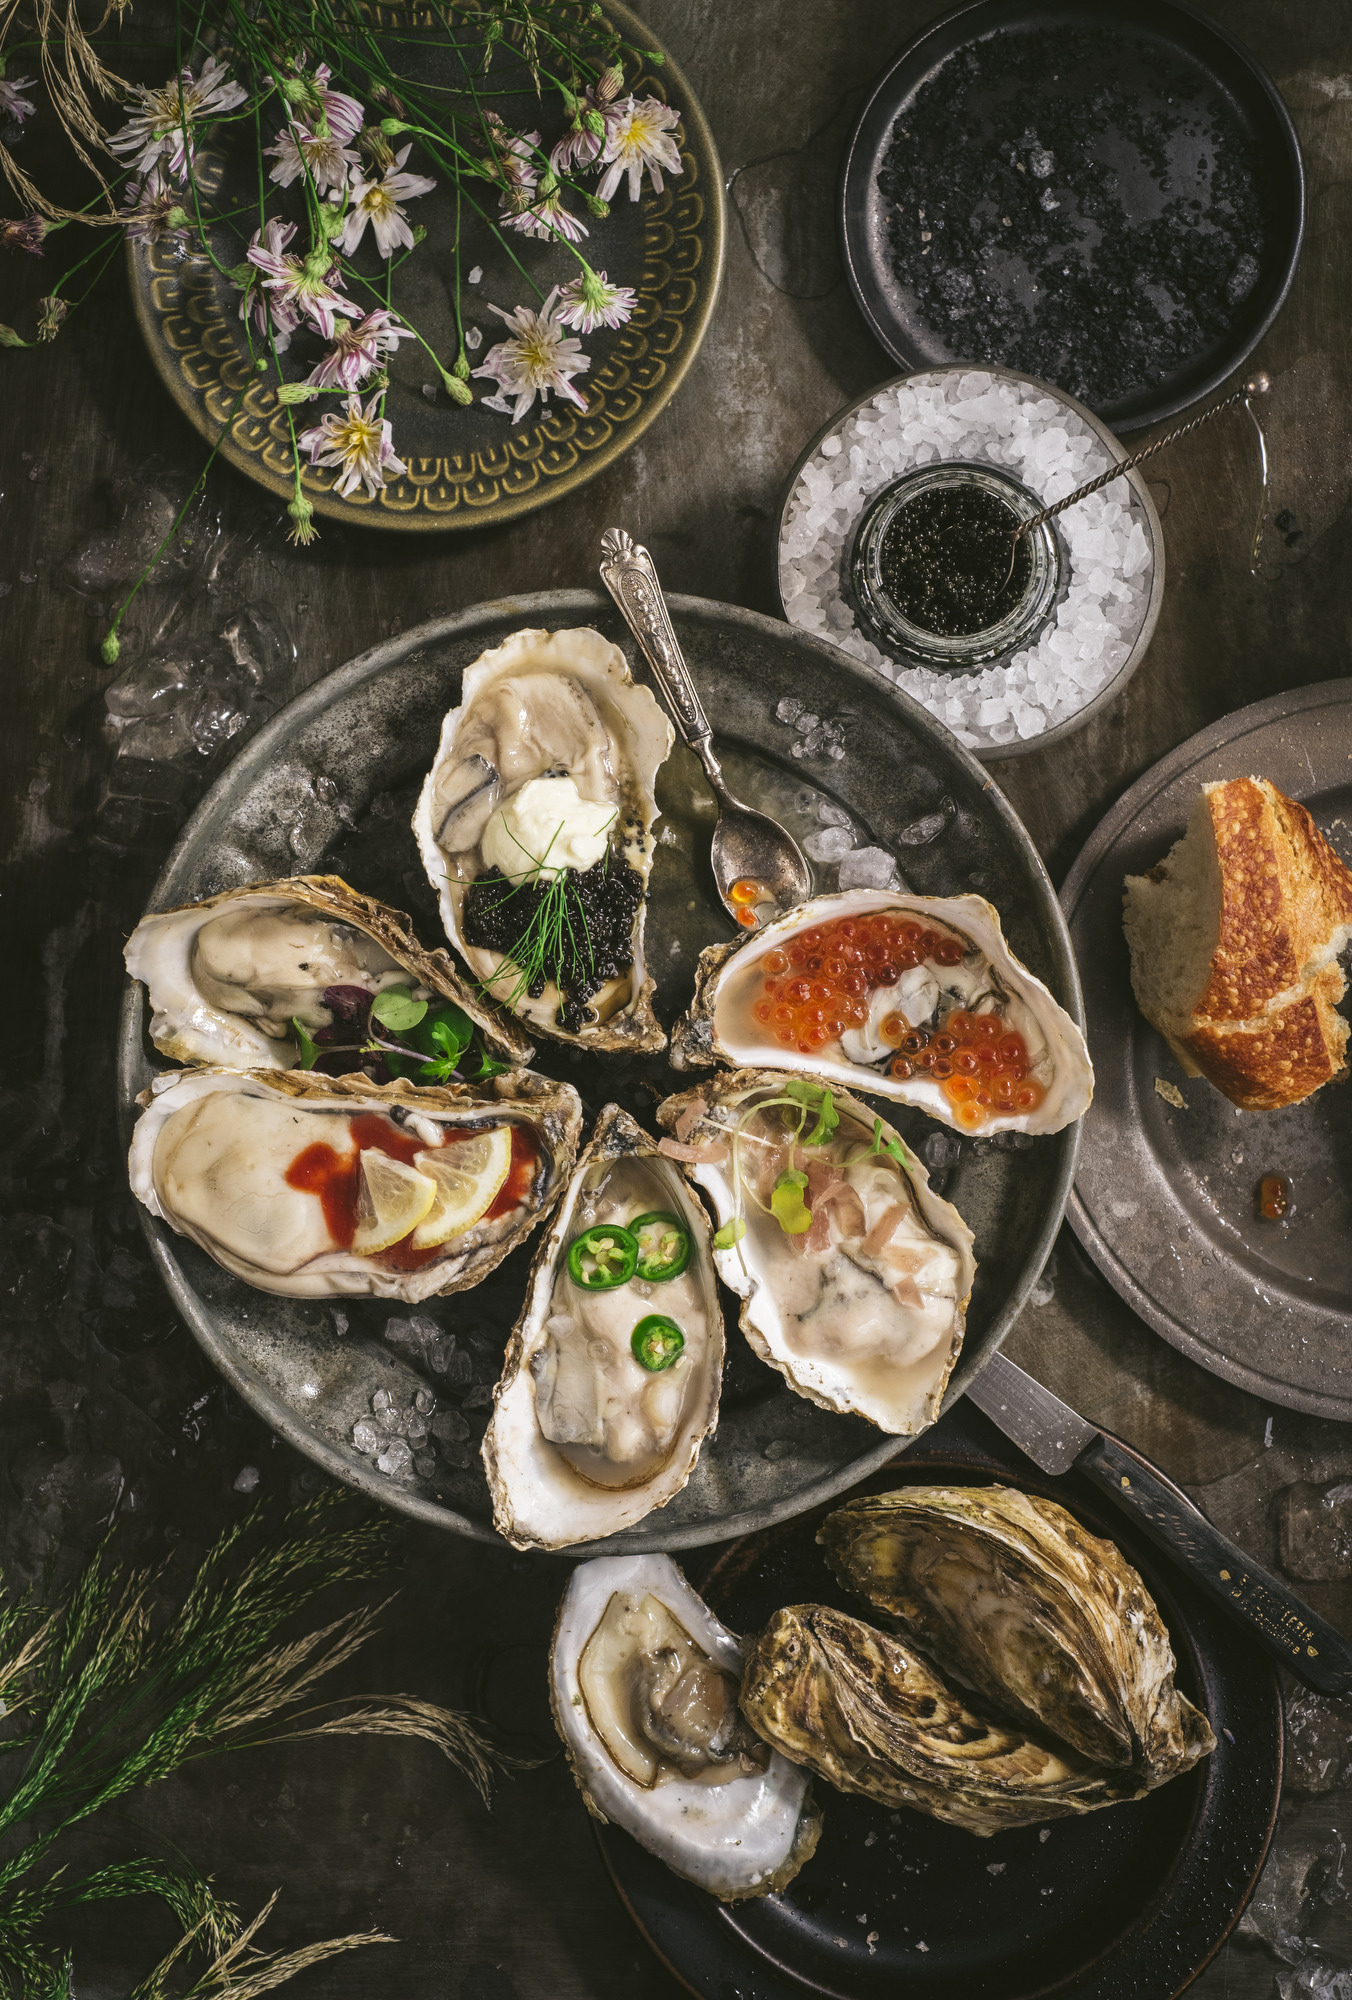 oyster scene with bread and caviar